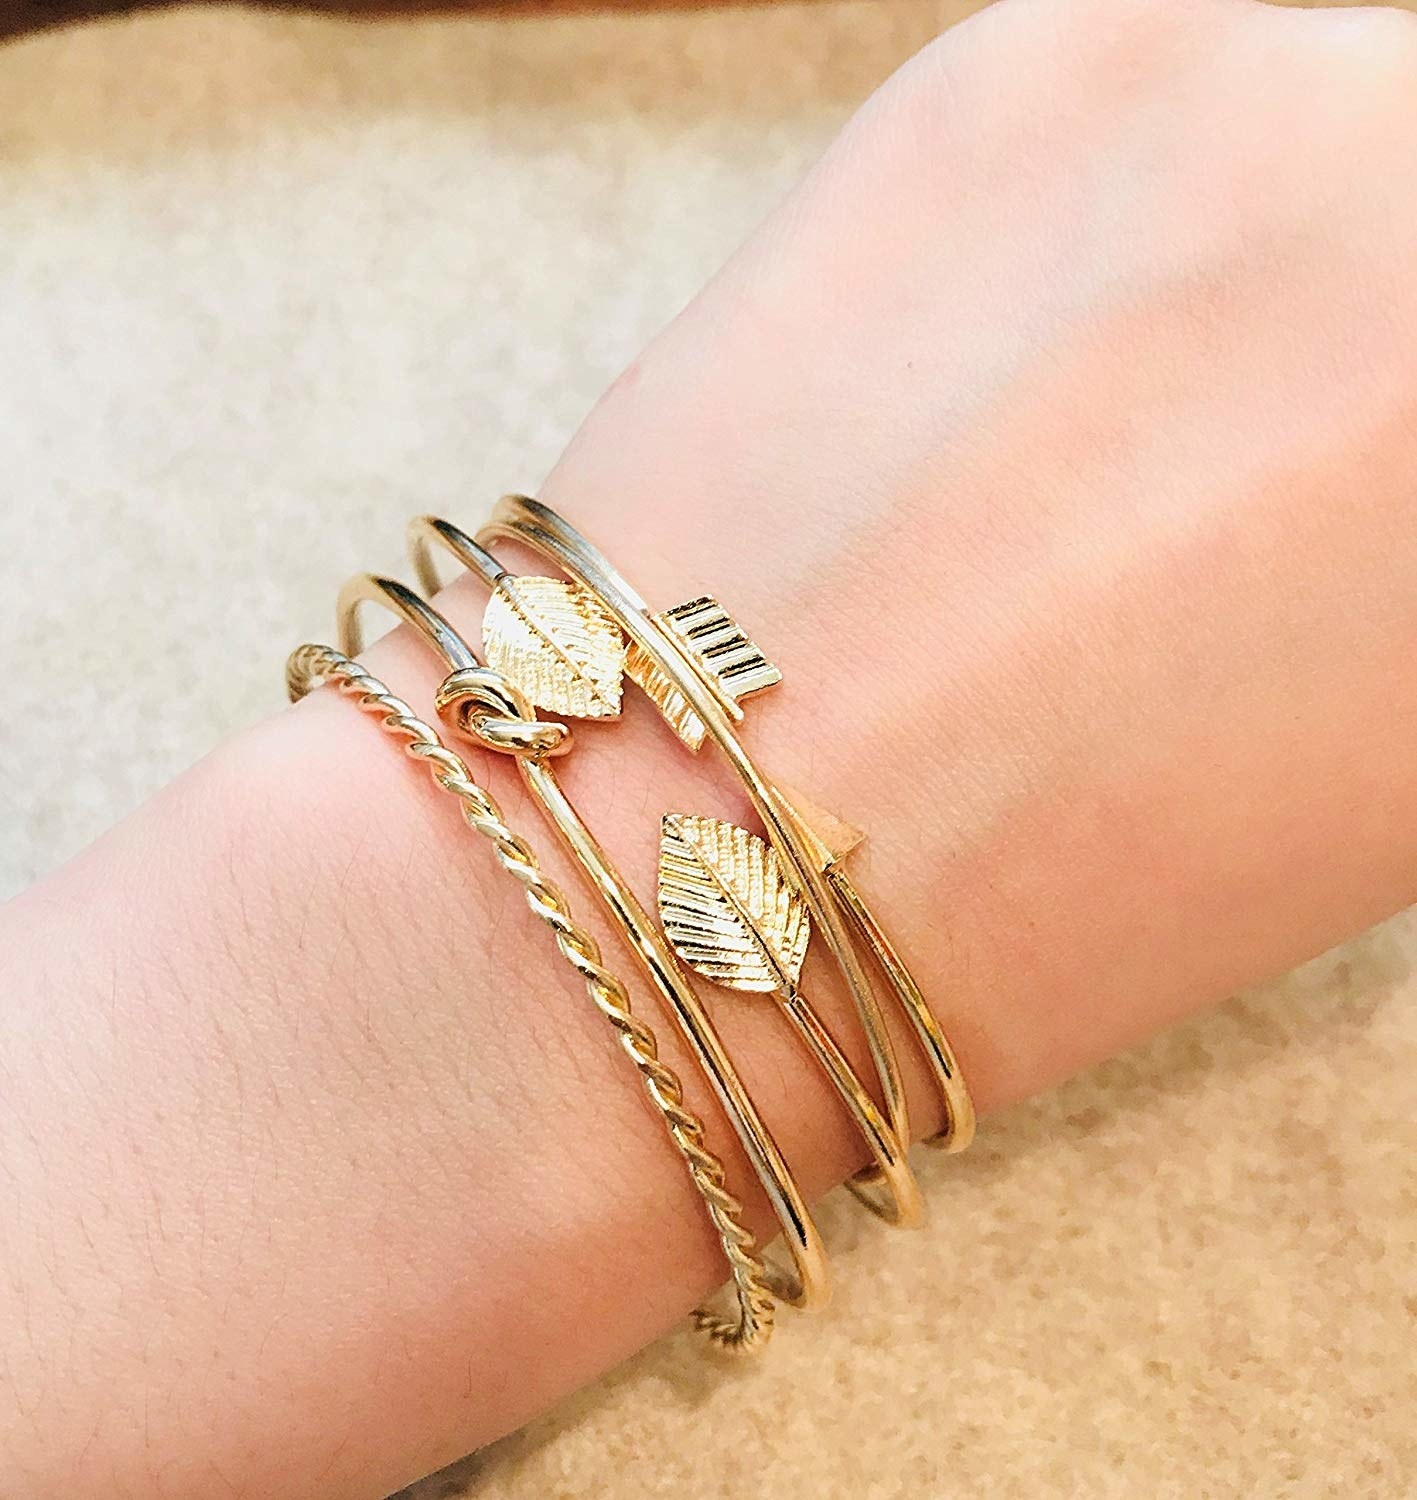 A wrist with four bracelets: a twisted one, a knotted bangle, an open bangle with leaves on the ends, and an arrow-shape one